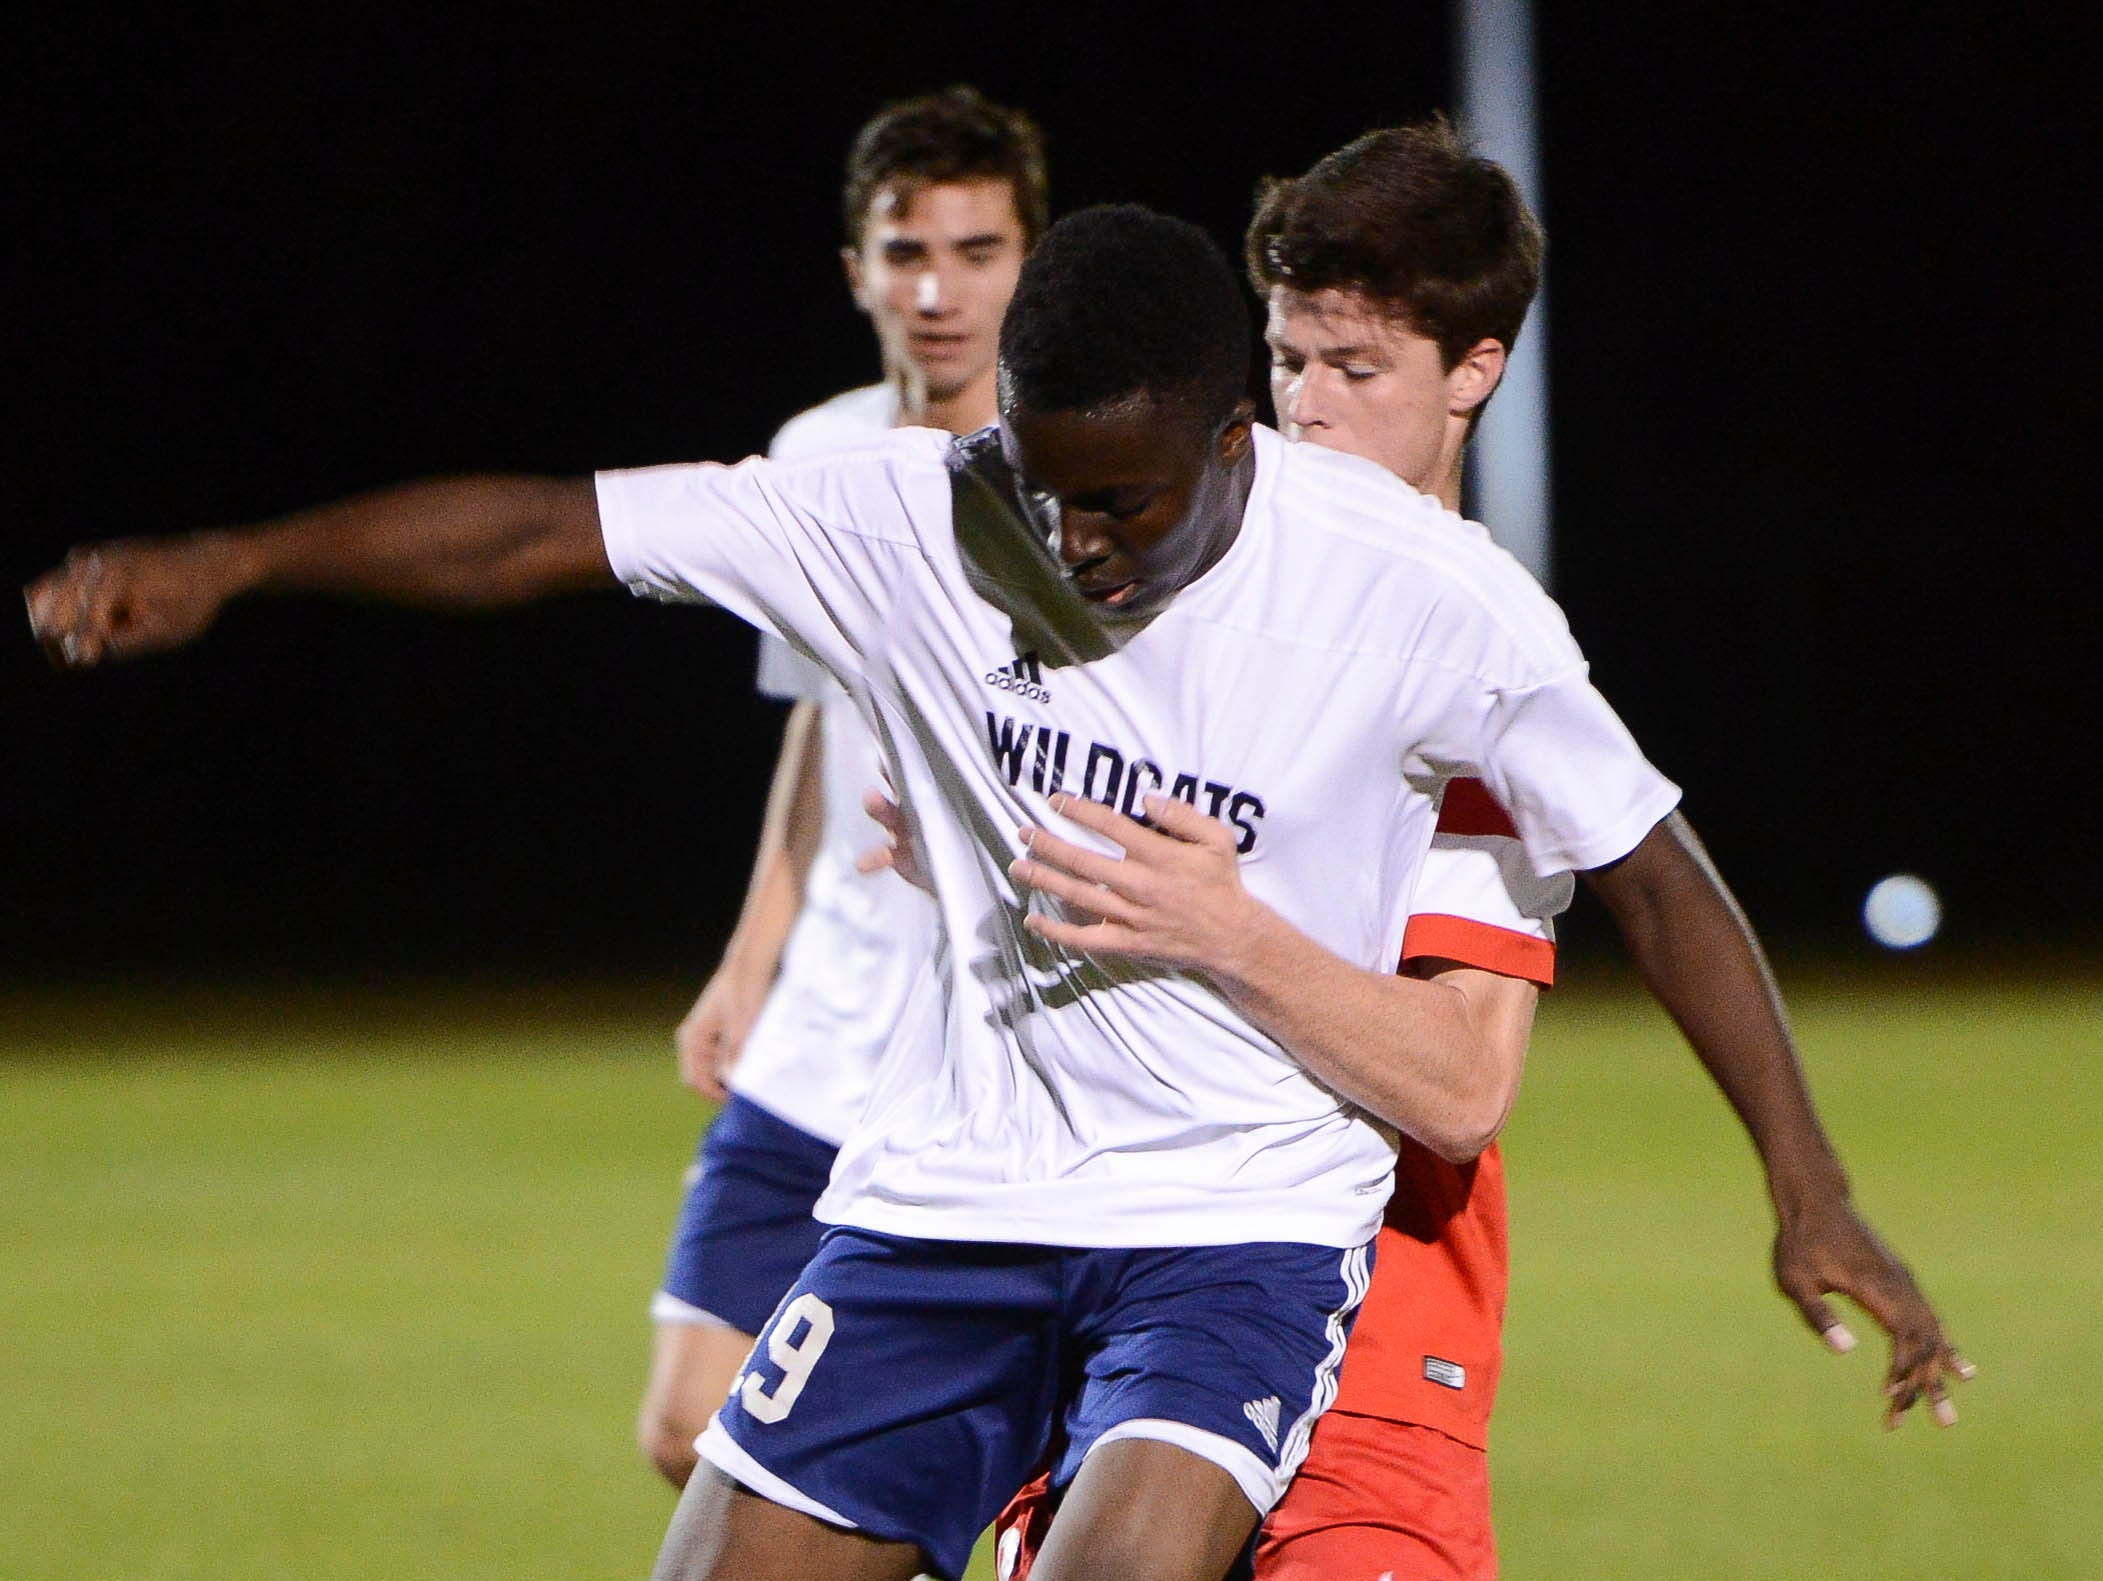 Charlie Wilkinson of Bishop Kenny tries to force West Shore's Amugo Chukwunenye off the ball during Friday's Class 2A state soccer semifinal.